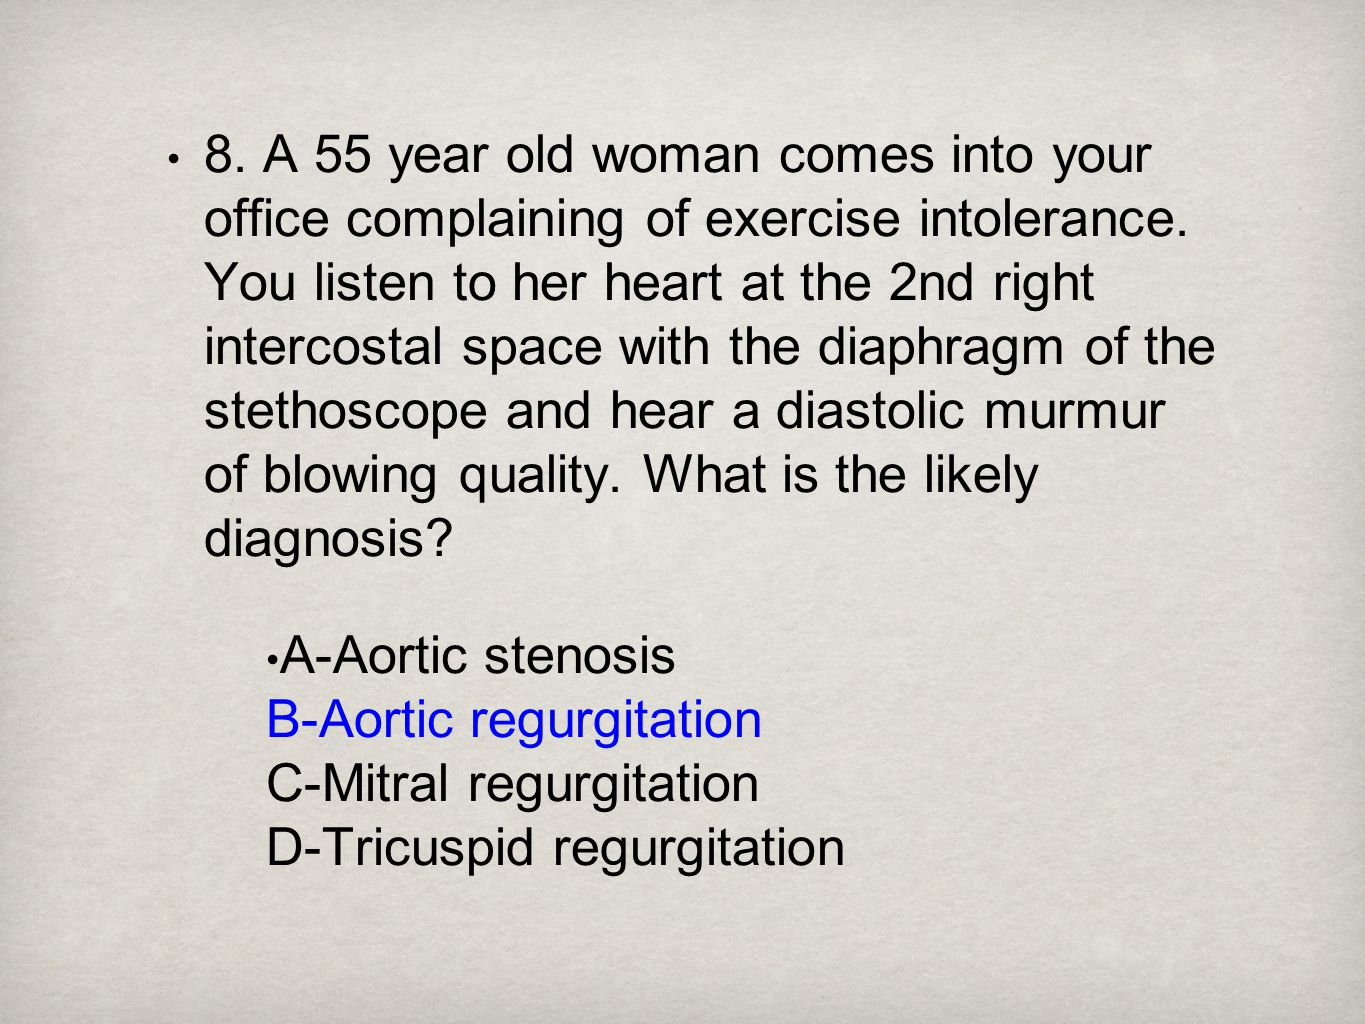 8. A 55 year old woman comes into your office complaining of exercise intolerance. You listen to her heart at the 2nd right intercostal space with the diaphragm of the stethoscope and hear a diastolic murmur of blowing quality. What is the likely diagnosis